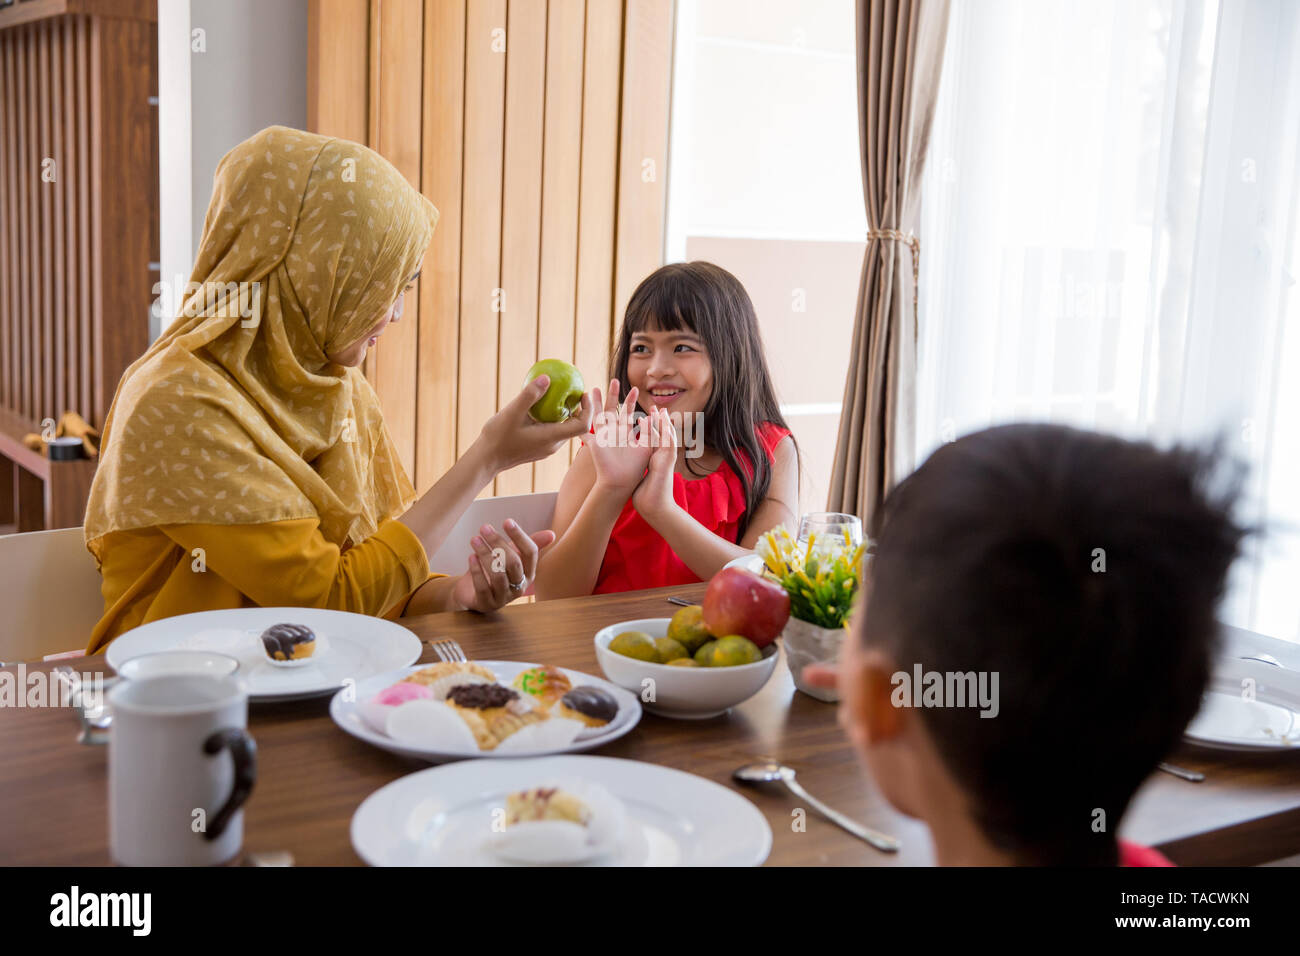 daughter refuse when mother try to offer some healthy food in living room - Stock Image